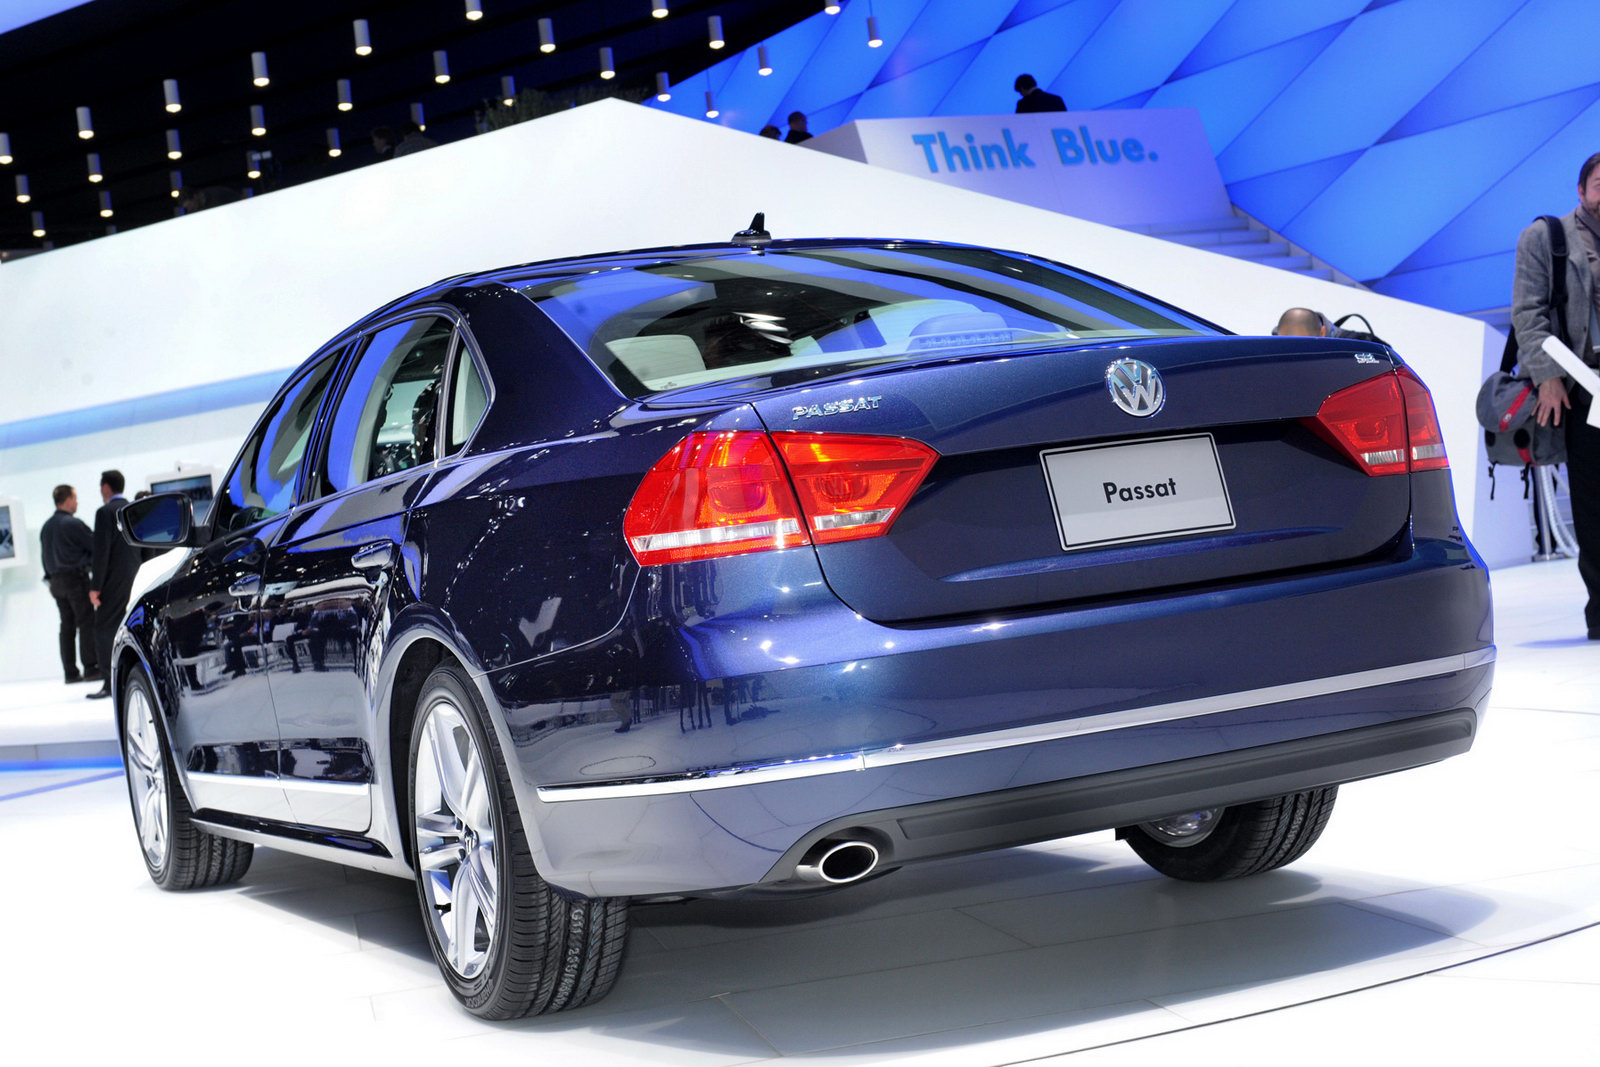 2012 Volkswagen Passat Live Photos From Naias Plus Driving Footage Fuse Box Diagram While The Design May Not Be Engaging Cars Lower Sticker Prices Will Certainly Attract More Buyers As New Start Around 20000 Or